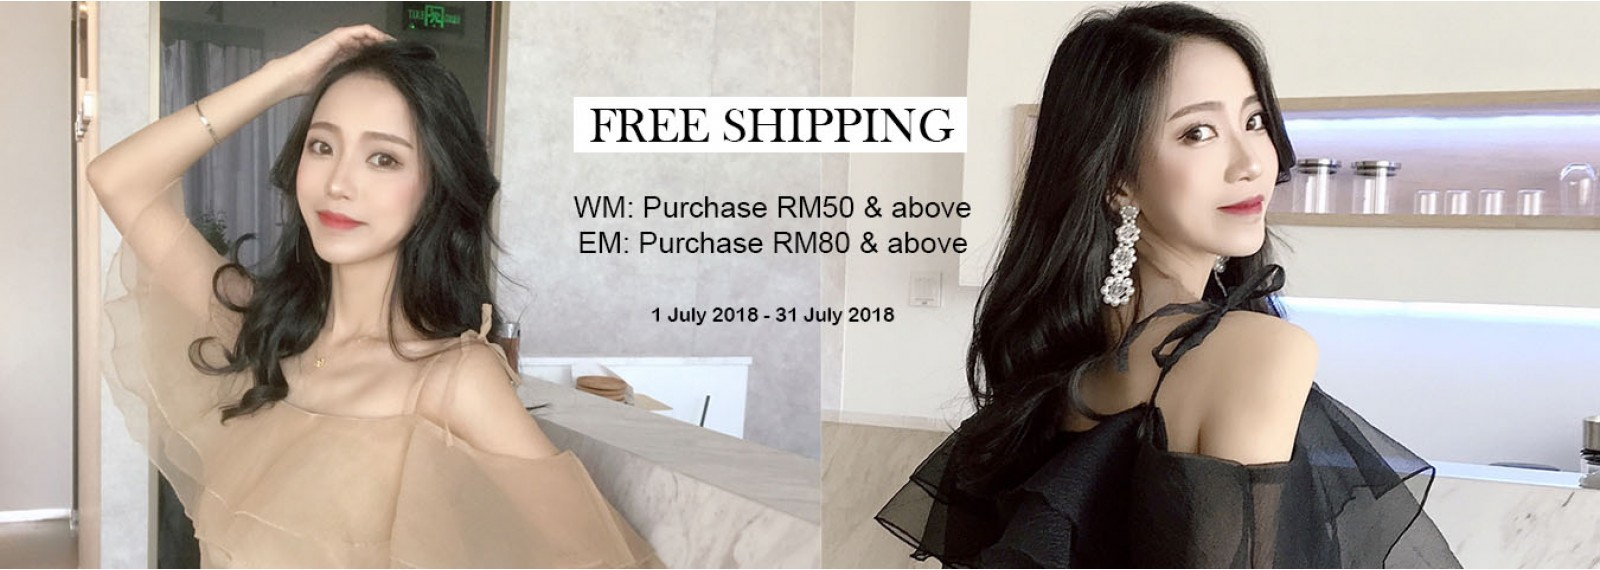 2018.07.05 Free Shipping_1